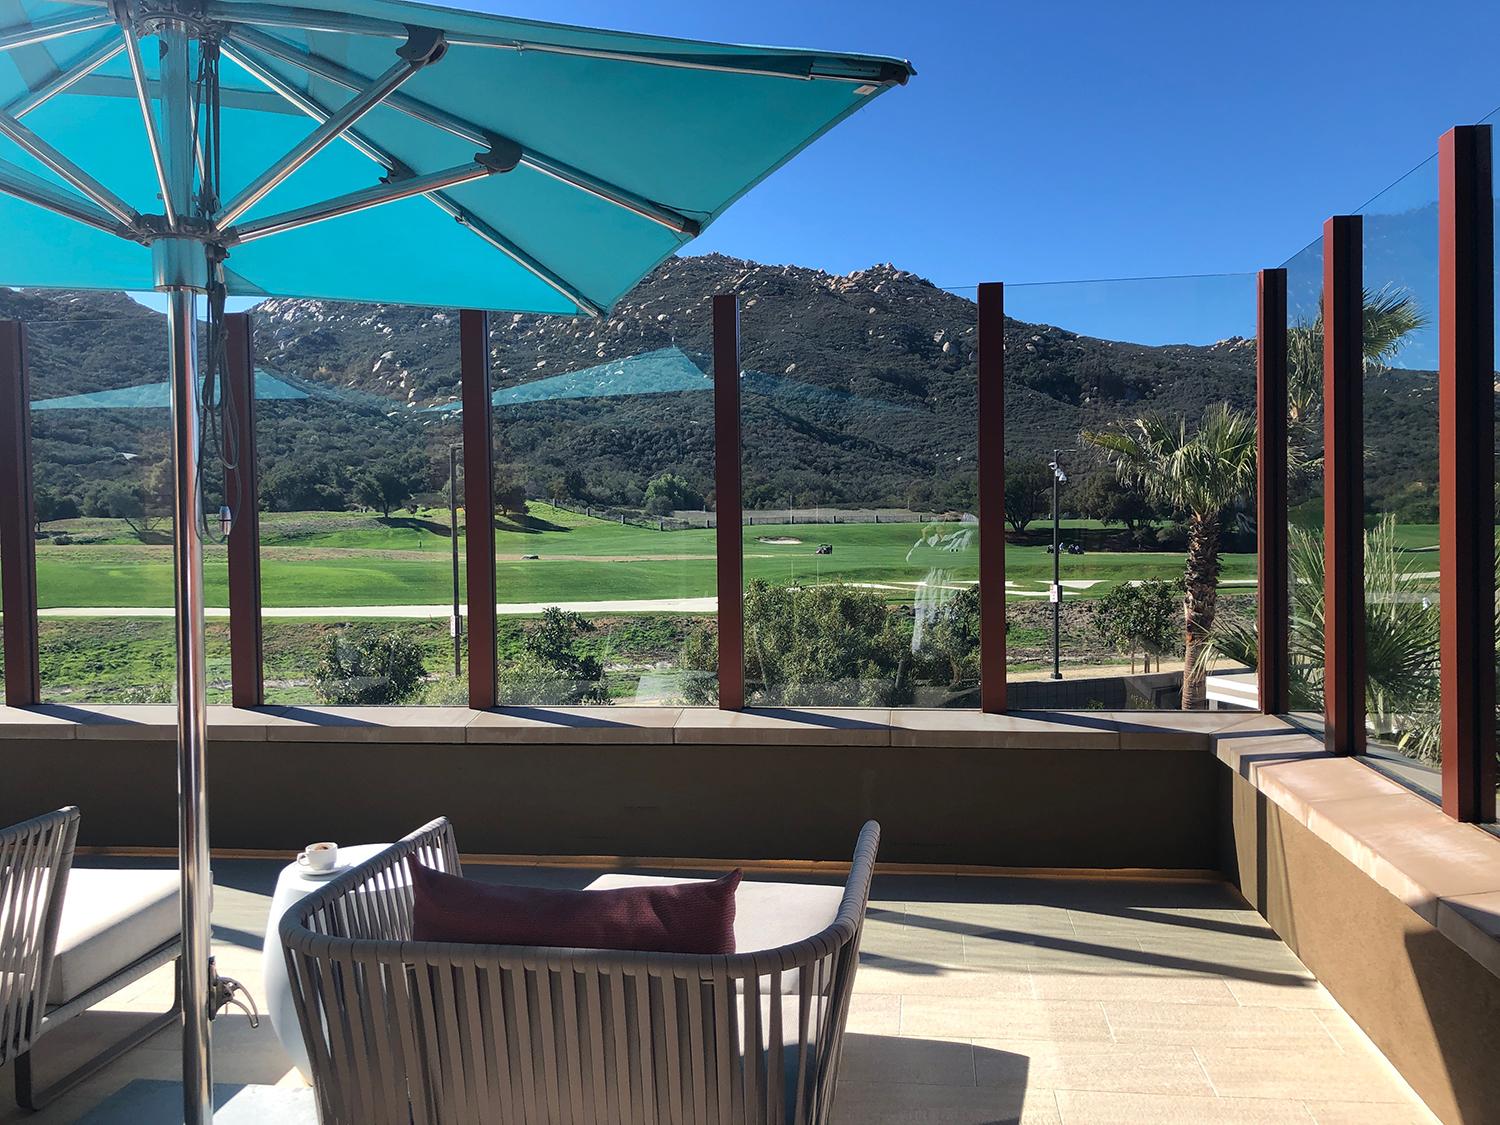 The Spa lounge includes an upper outside deck that offers views of the golf course and Pu'eska Mountain.